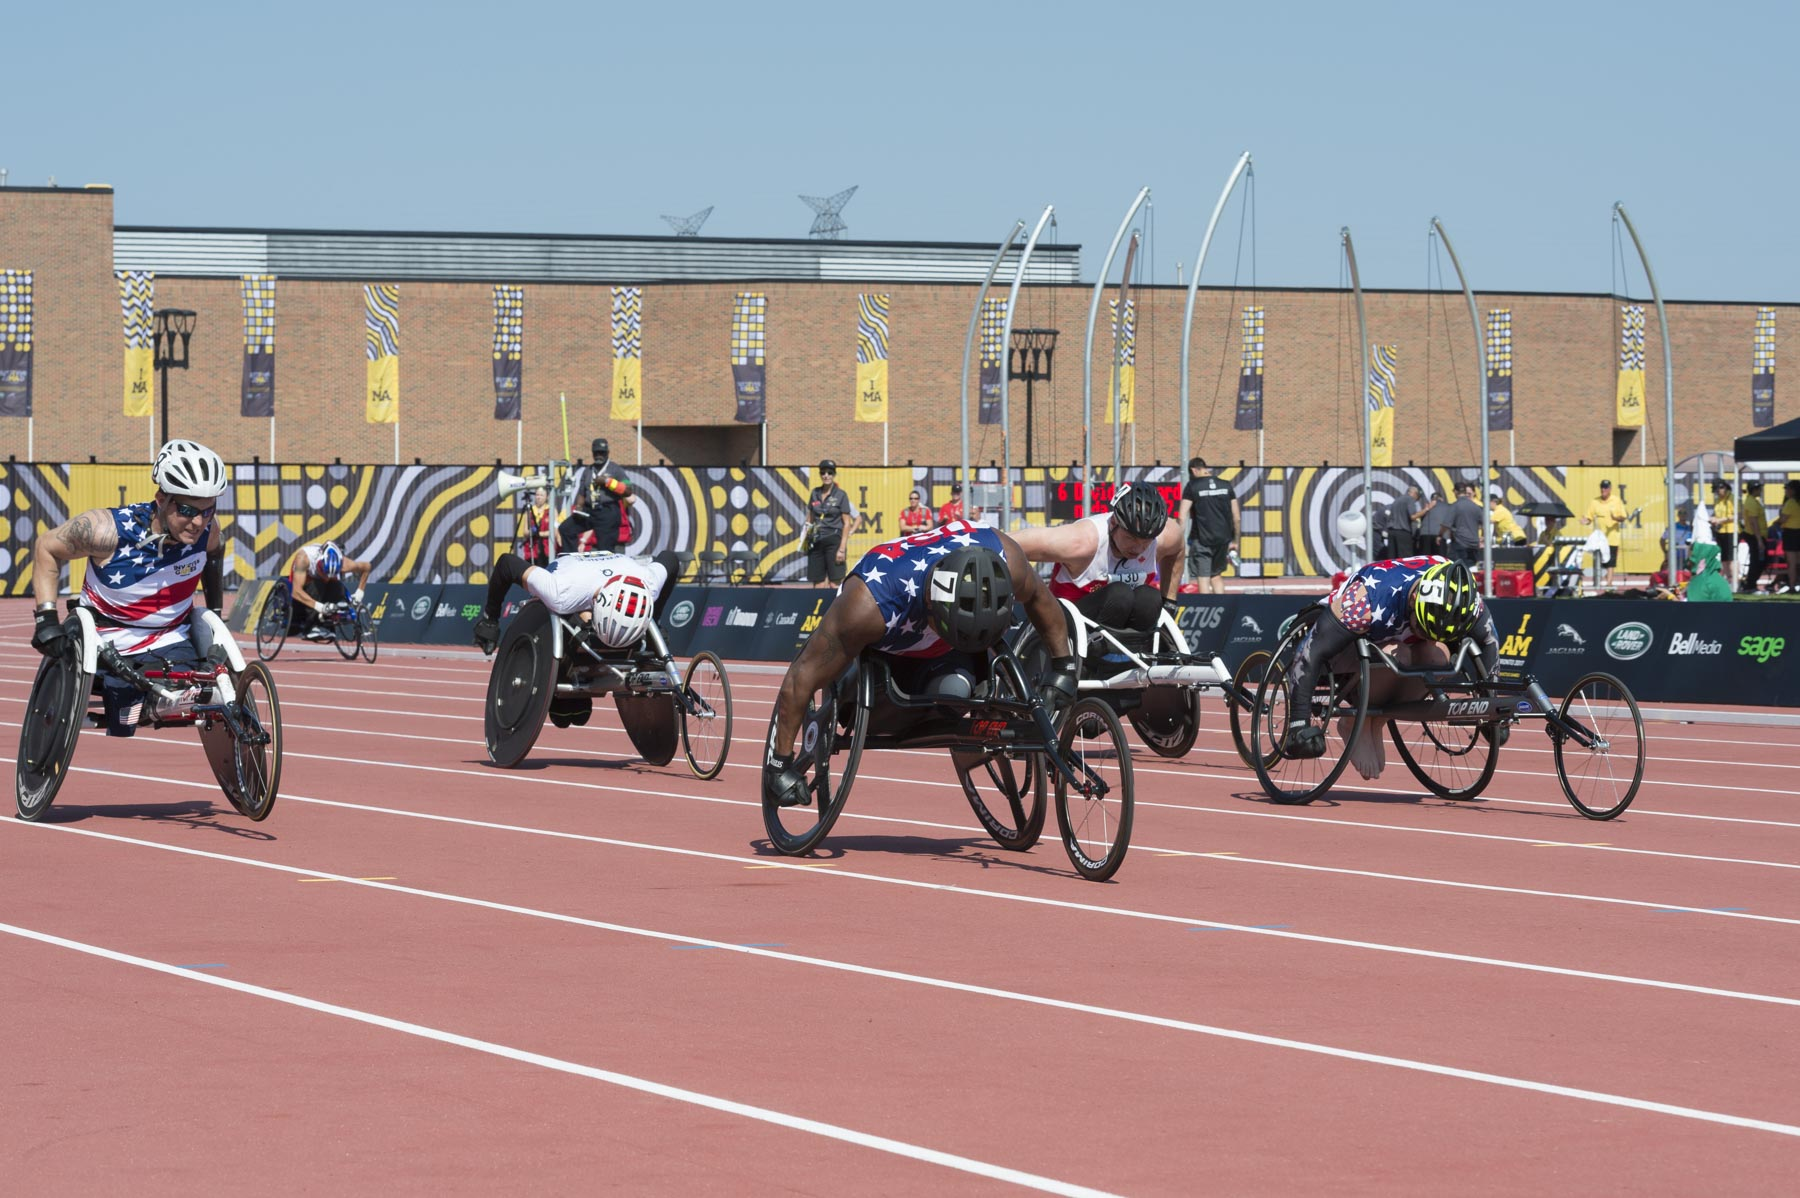 The next race was the men's 100-metre in a wheelchair.